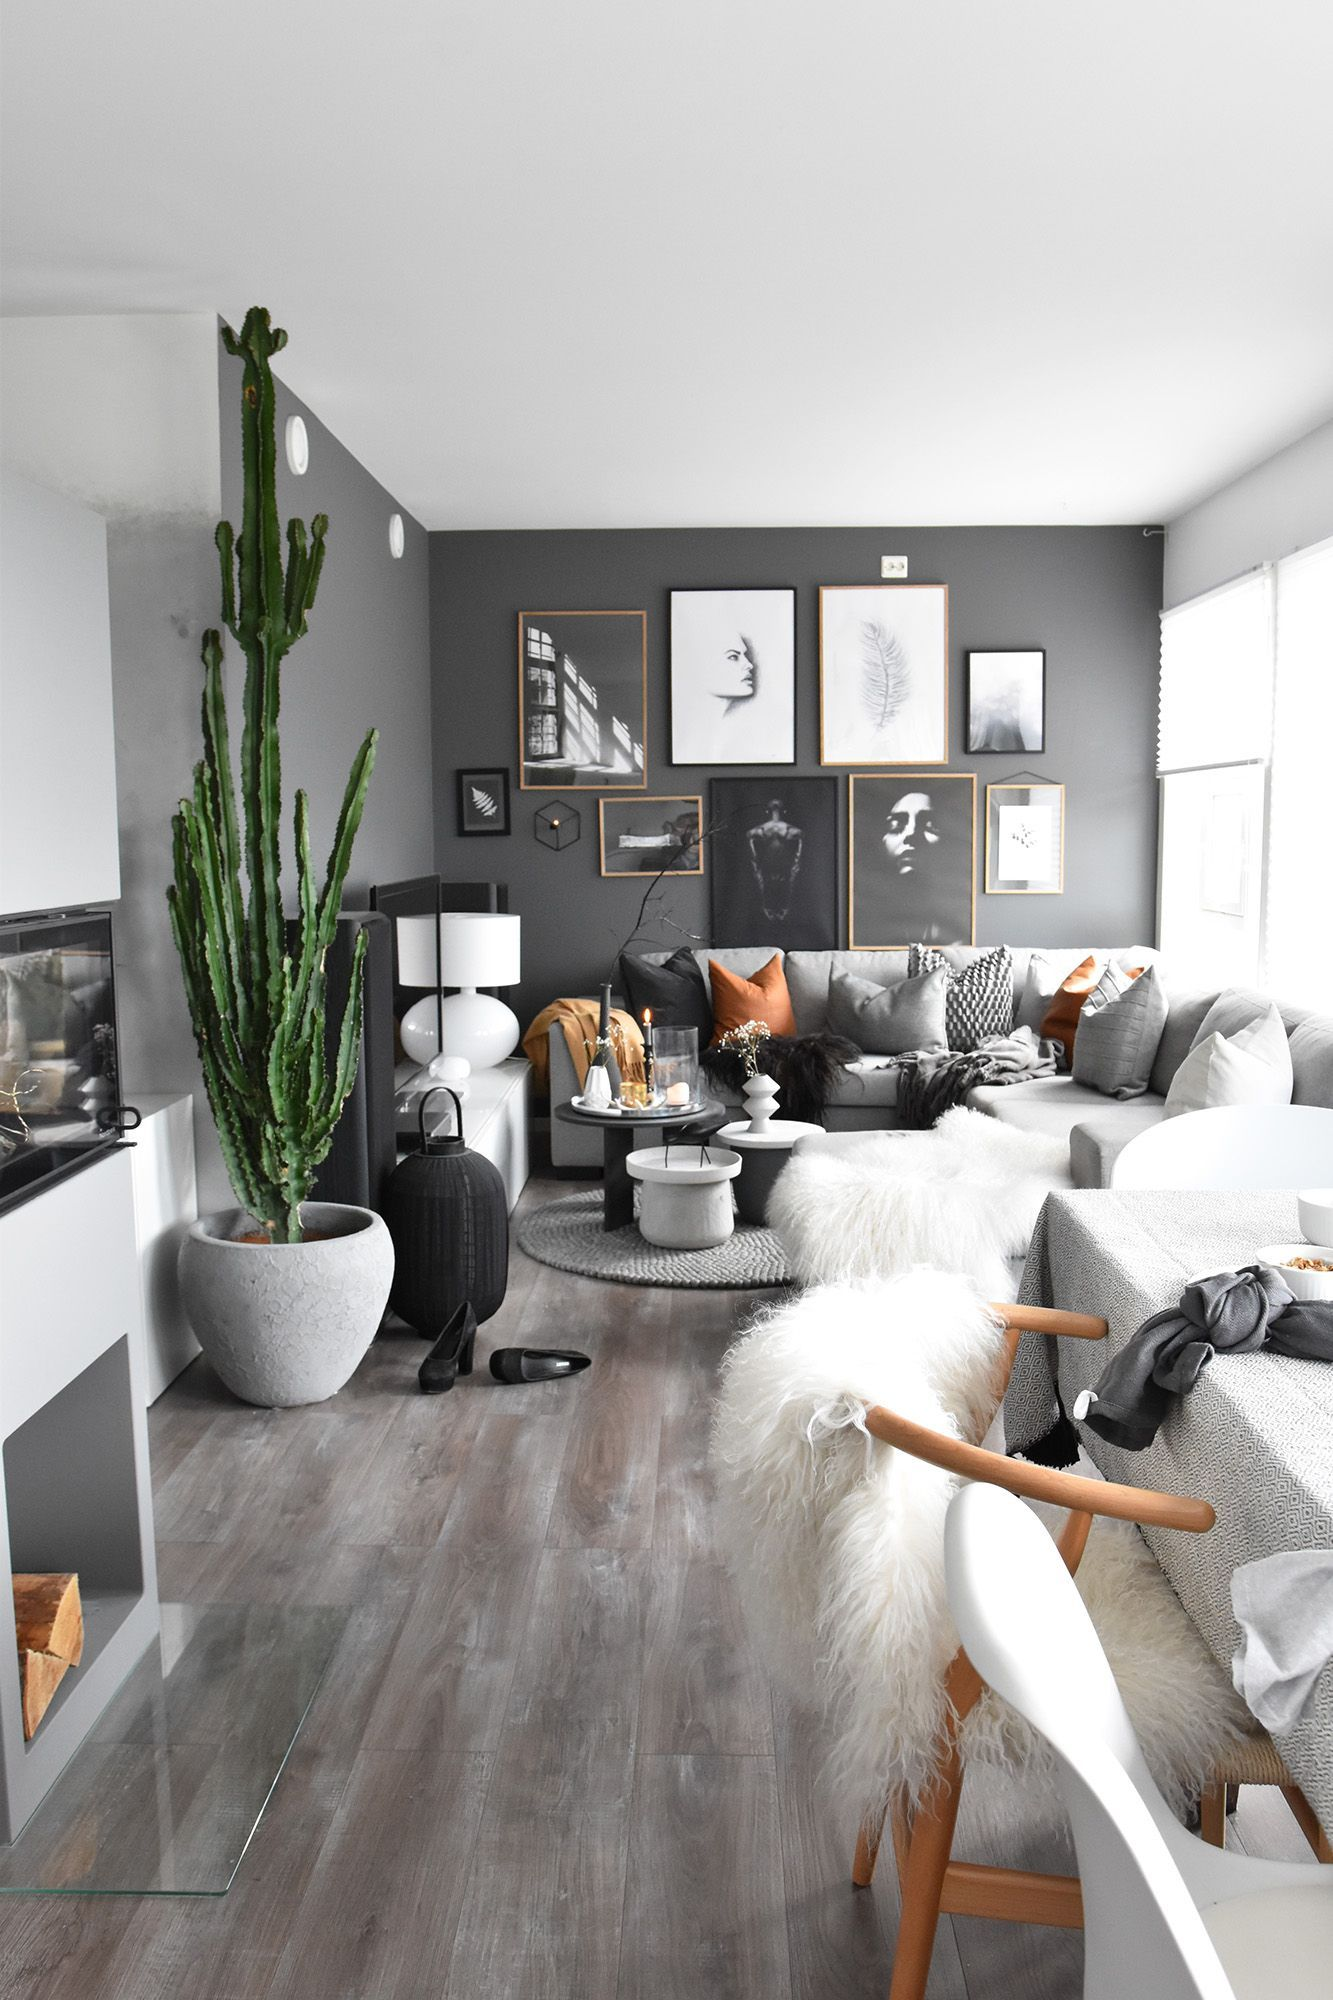 Wohnzimmer Trends 2018 10 Fall Trends The Season S Latest Ideas Home Wohnzimmer Grau